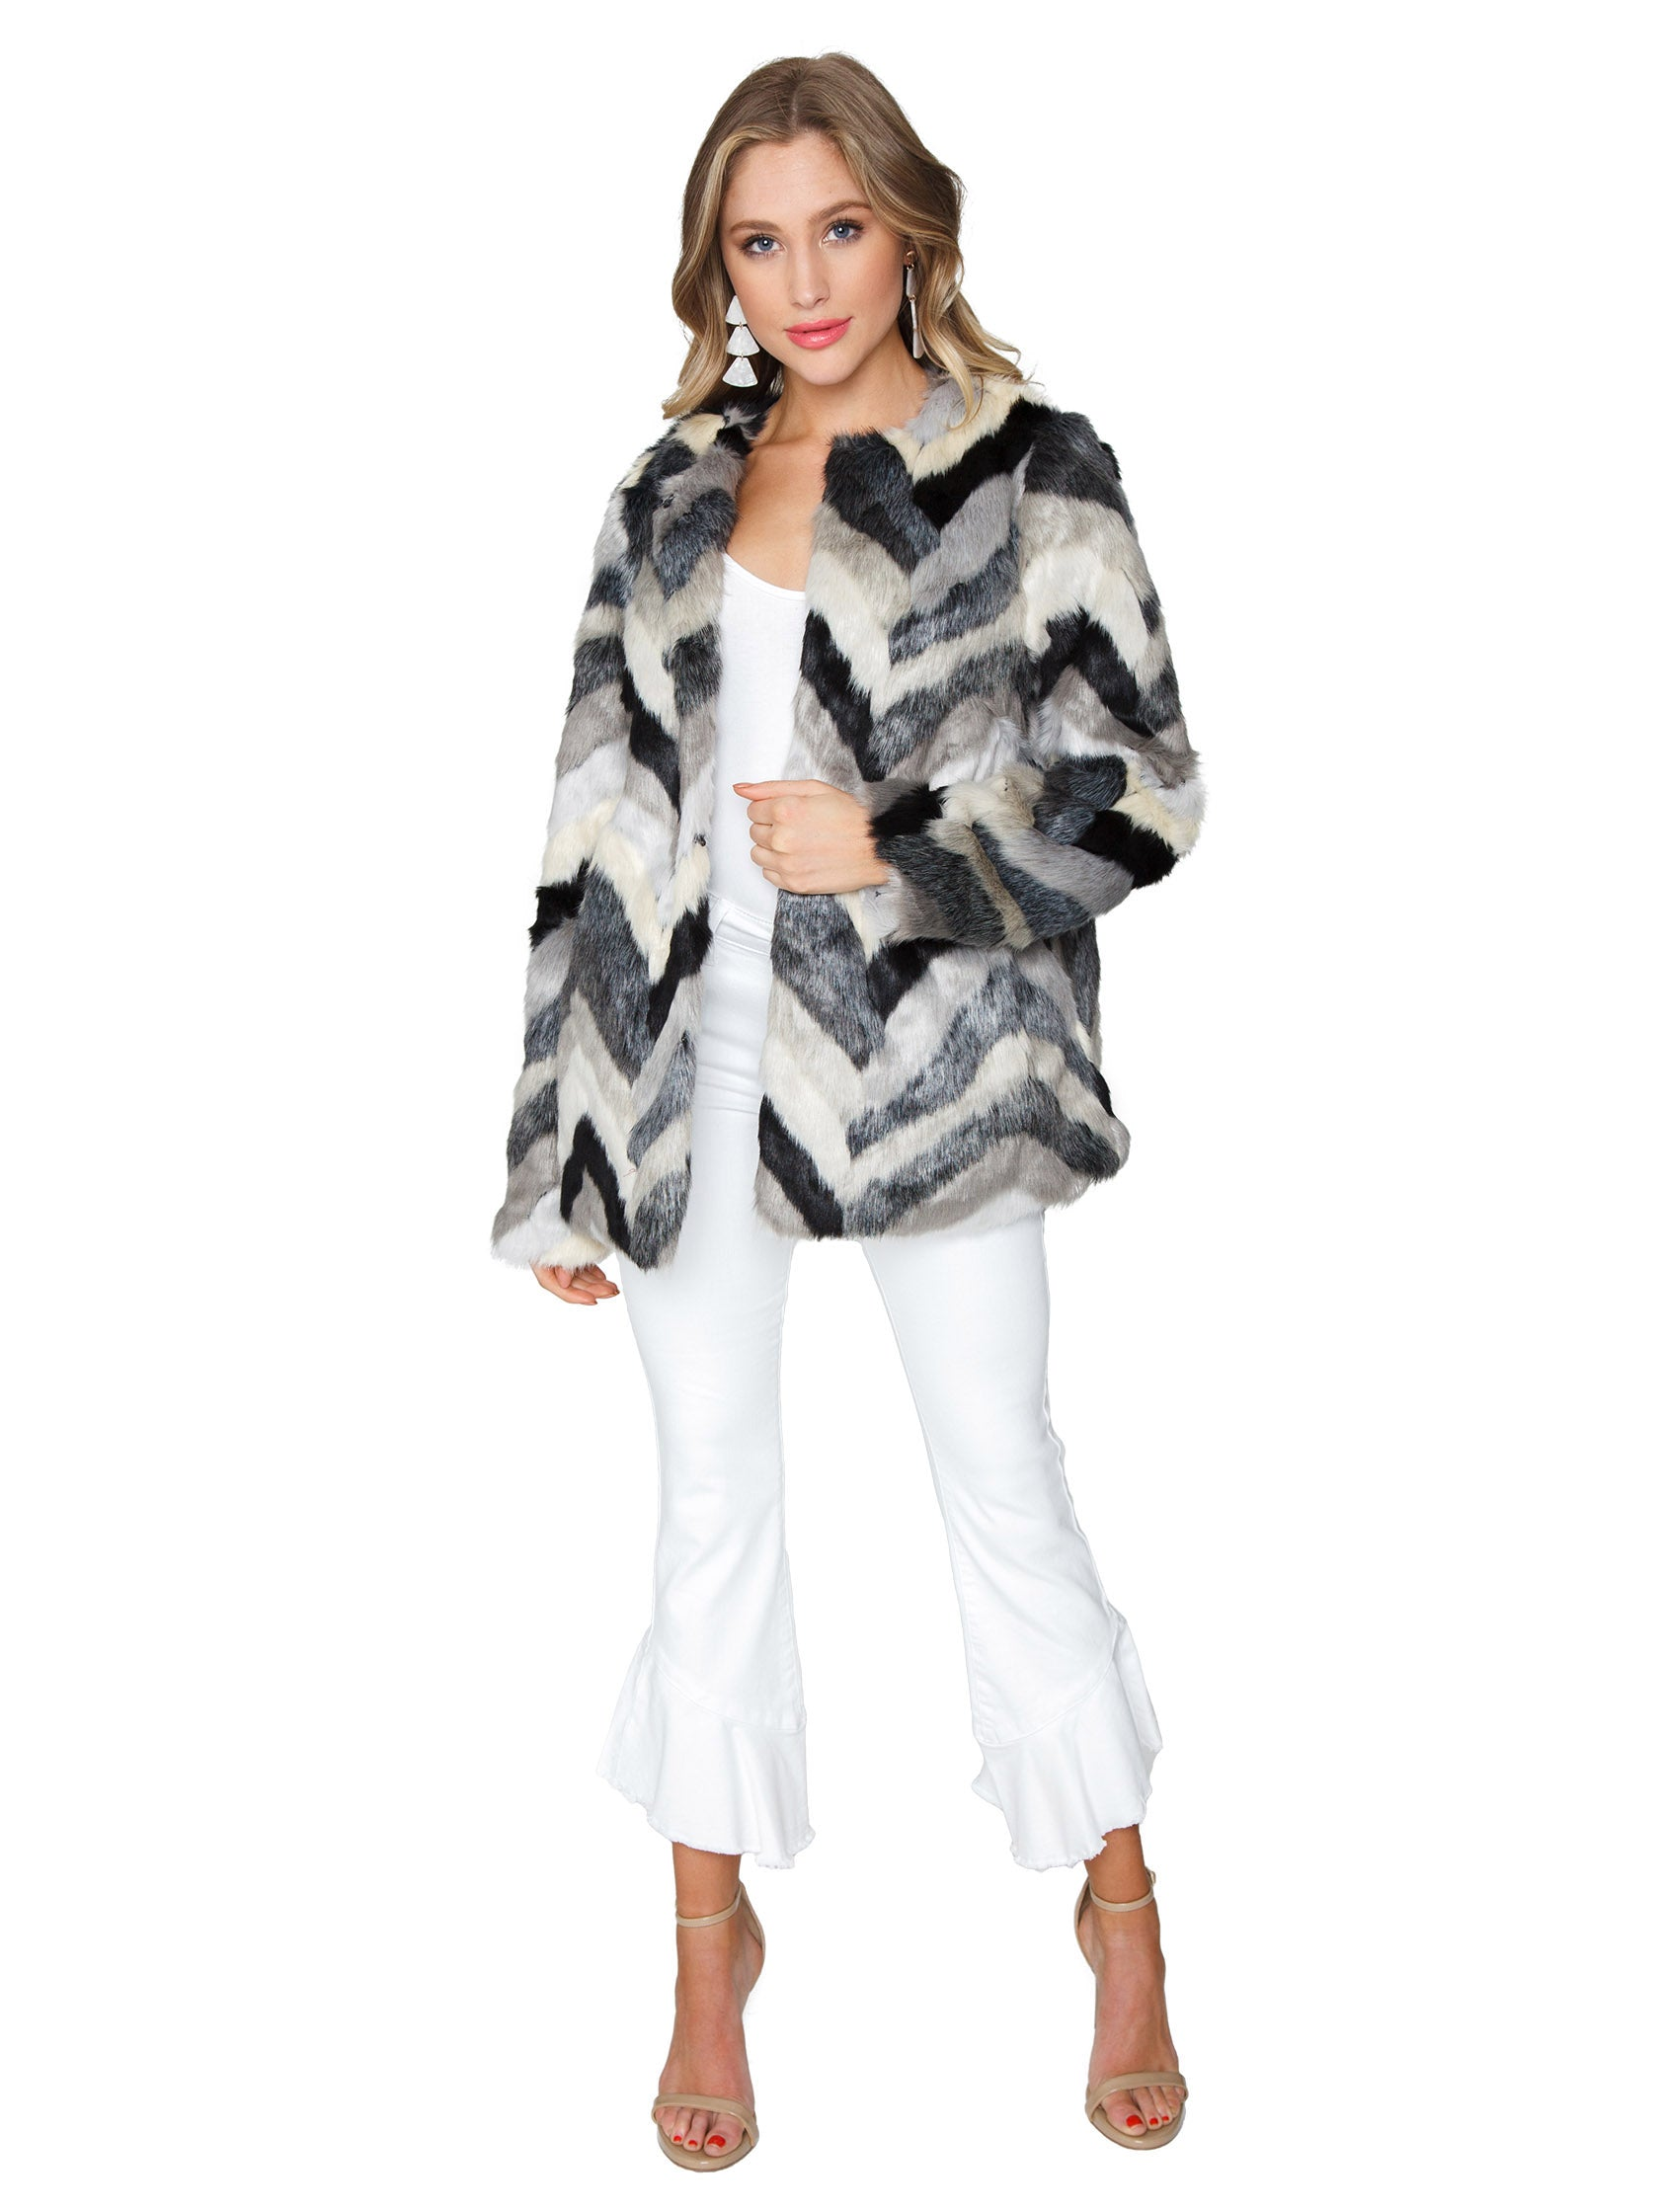 Girl wearing a jacket rental from FashionPass called Chevron Faux Fur Jacket